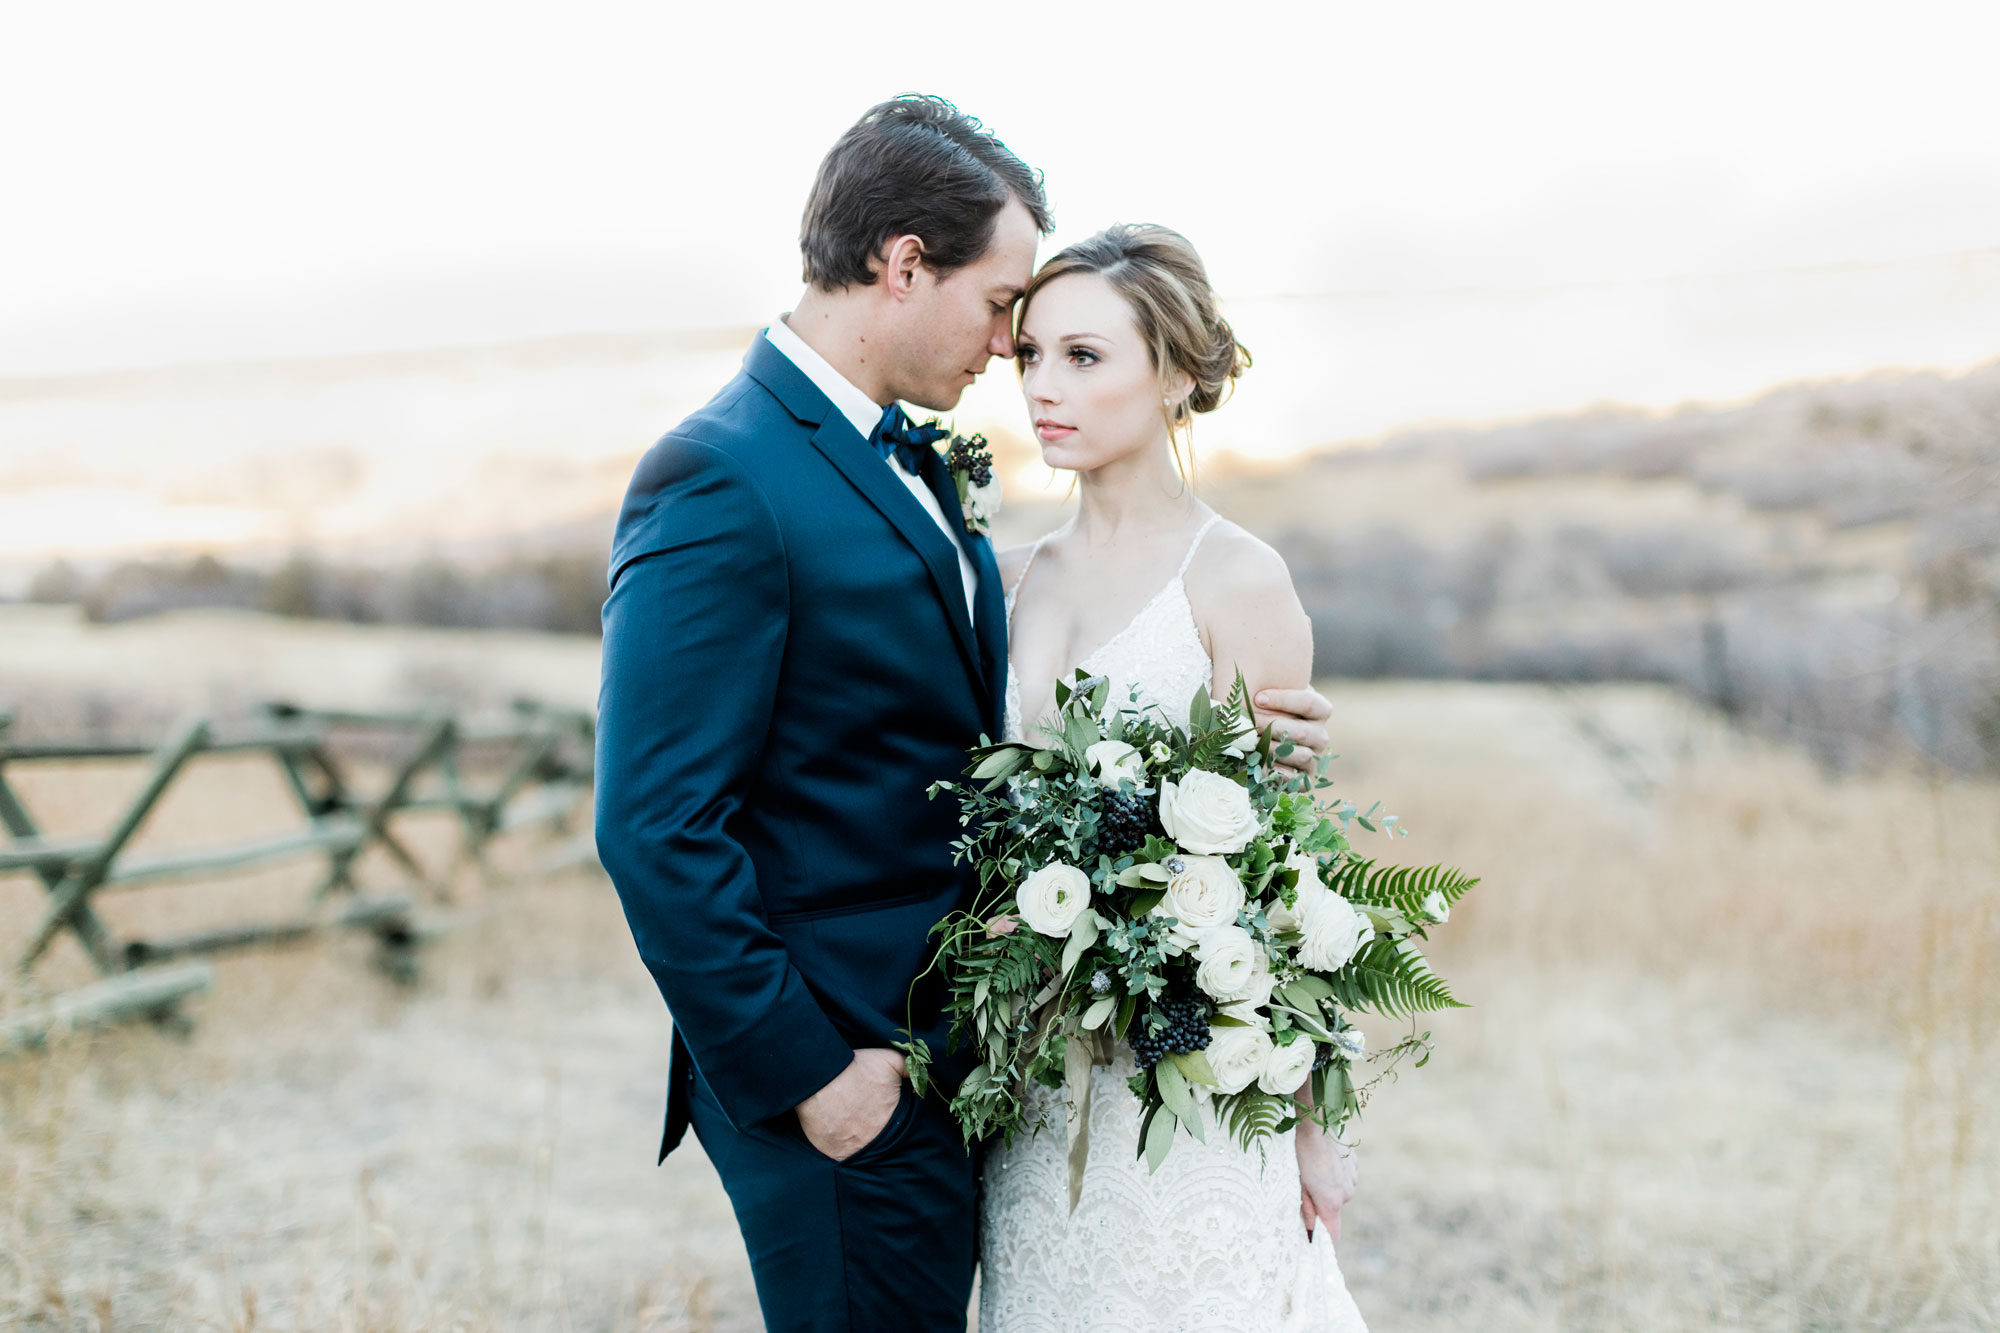 A Natural & Romantic Wedding Shoot in Colorado